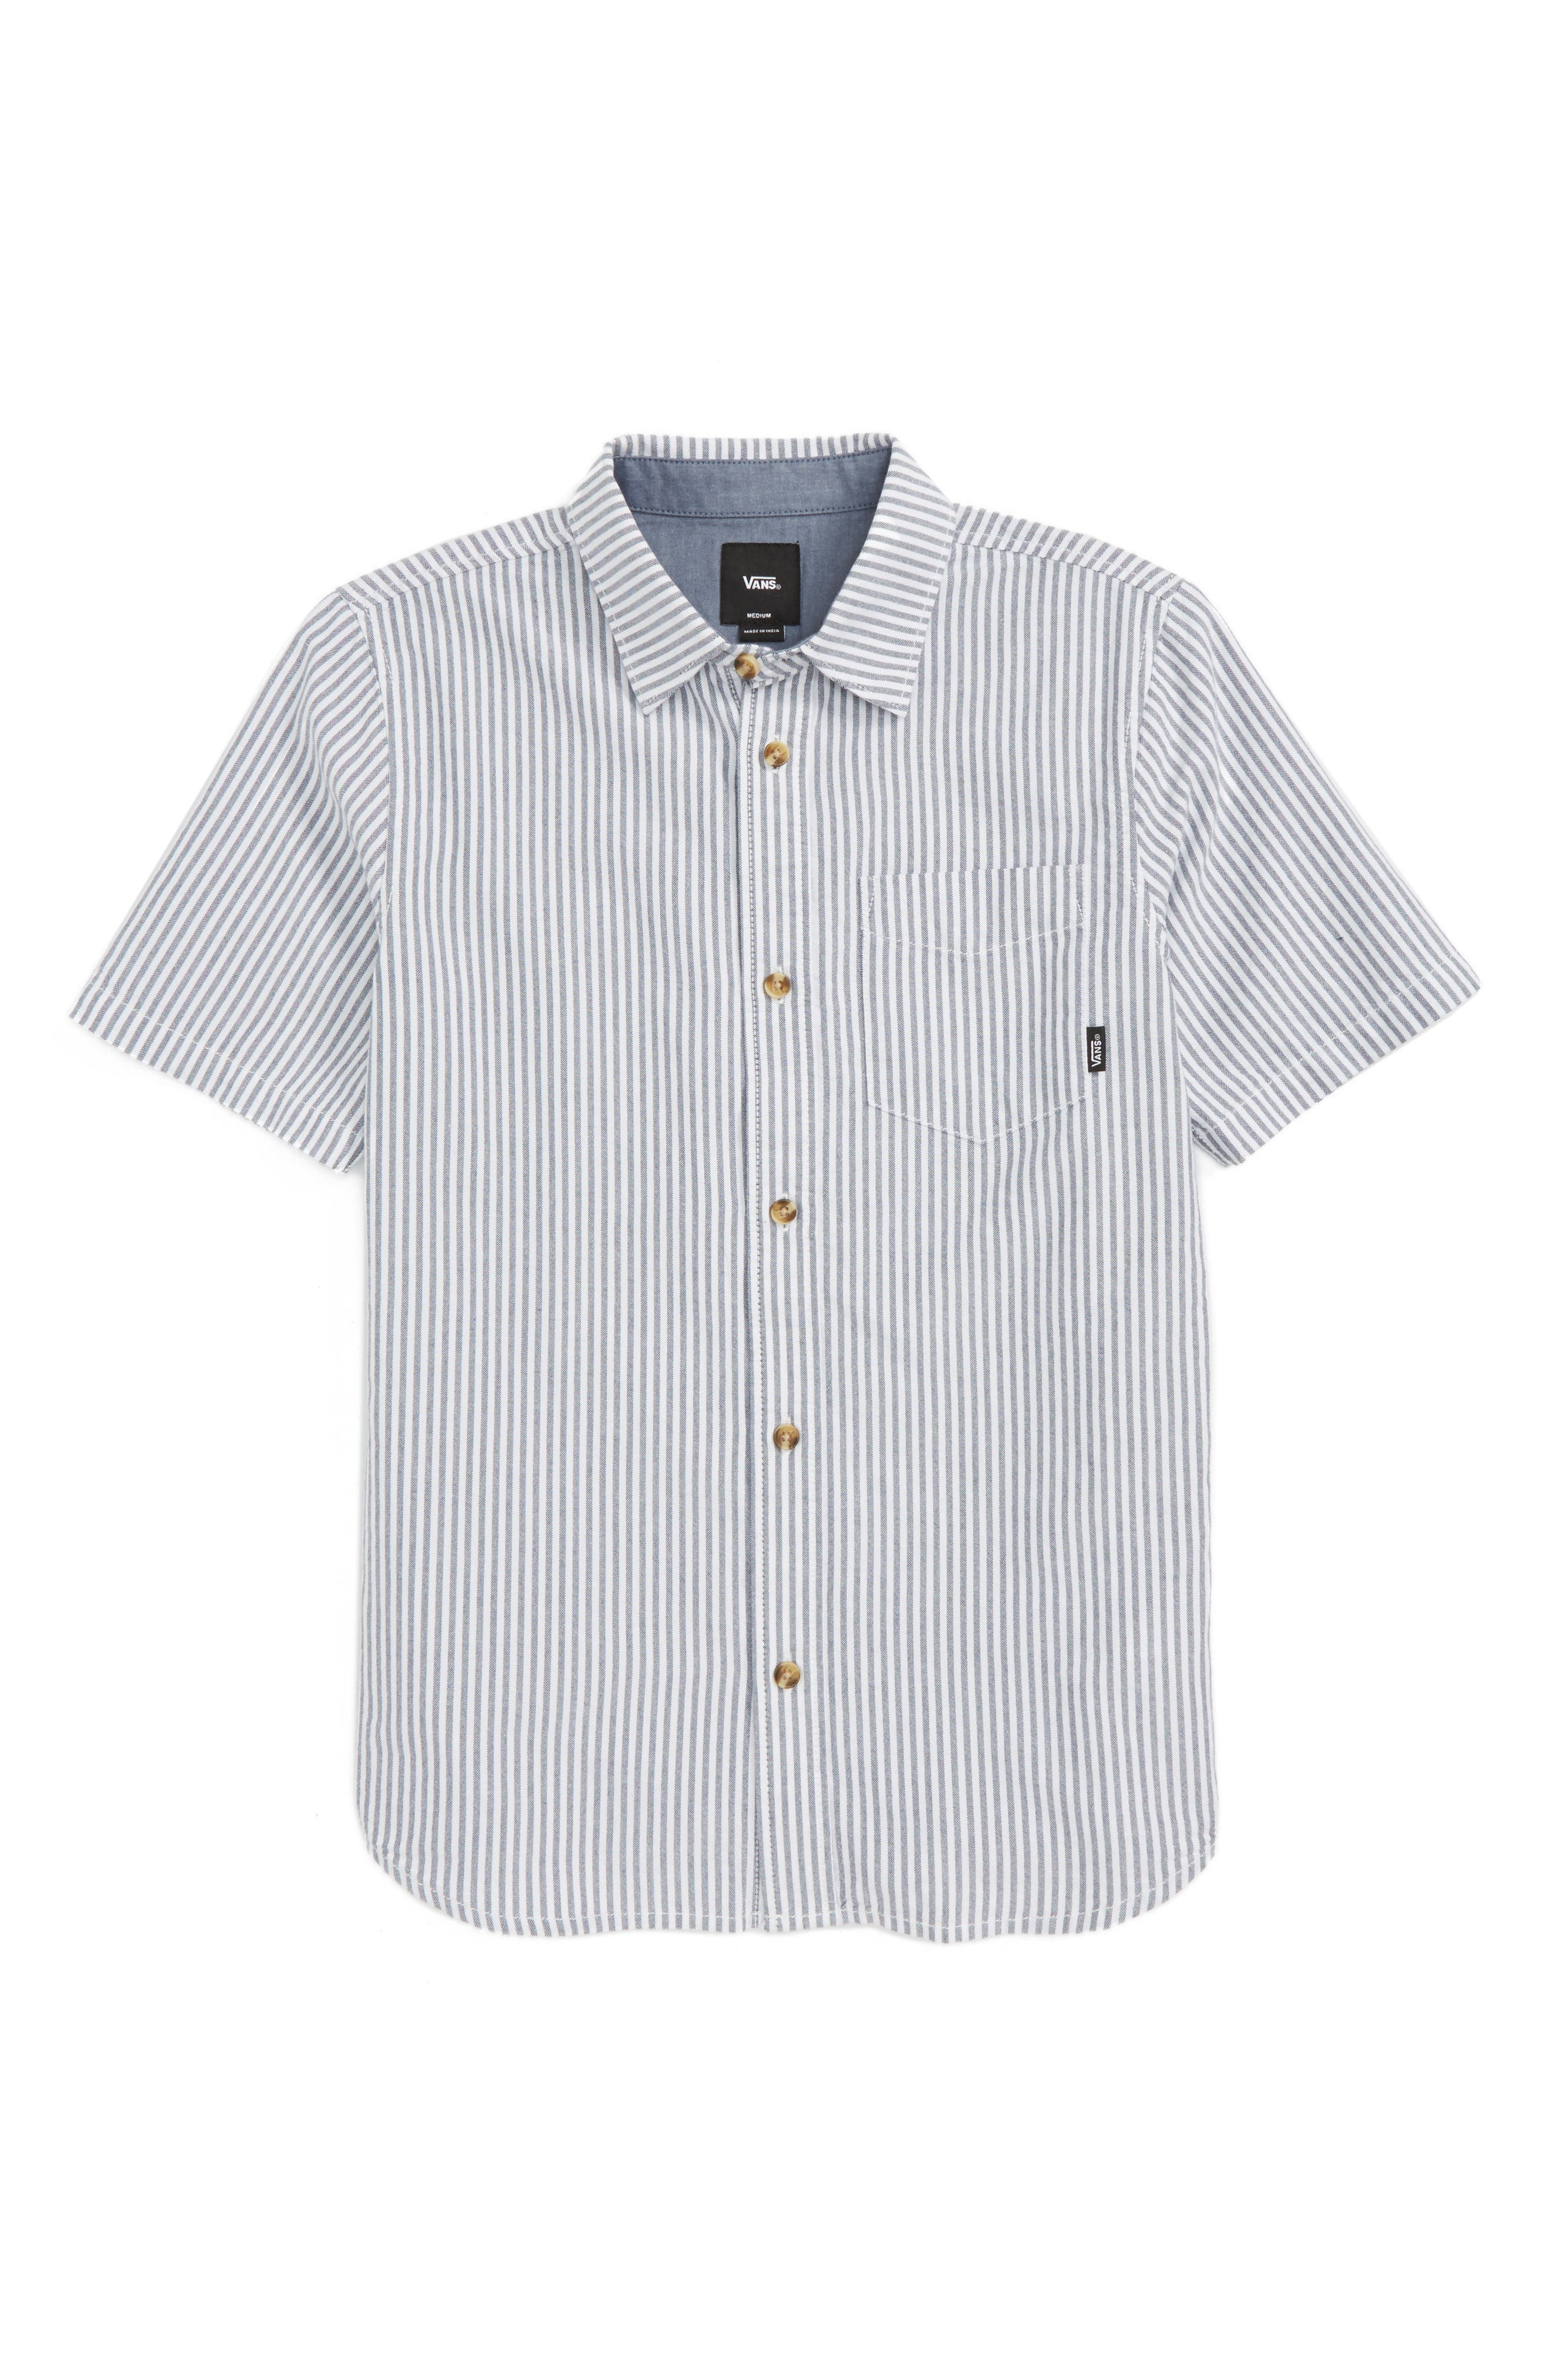 Vans Houser Stripe Cotton Woven Shirt (Big Boys)